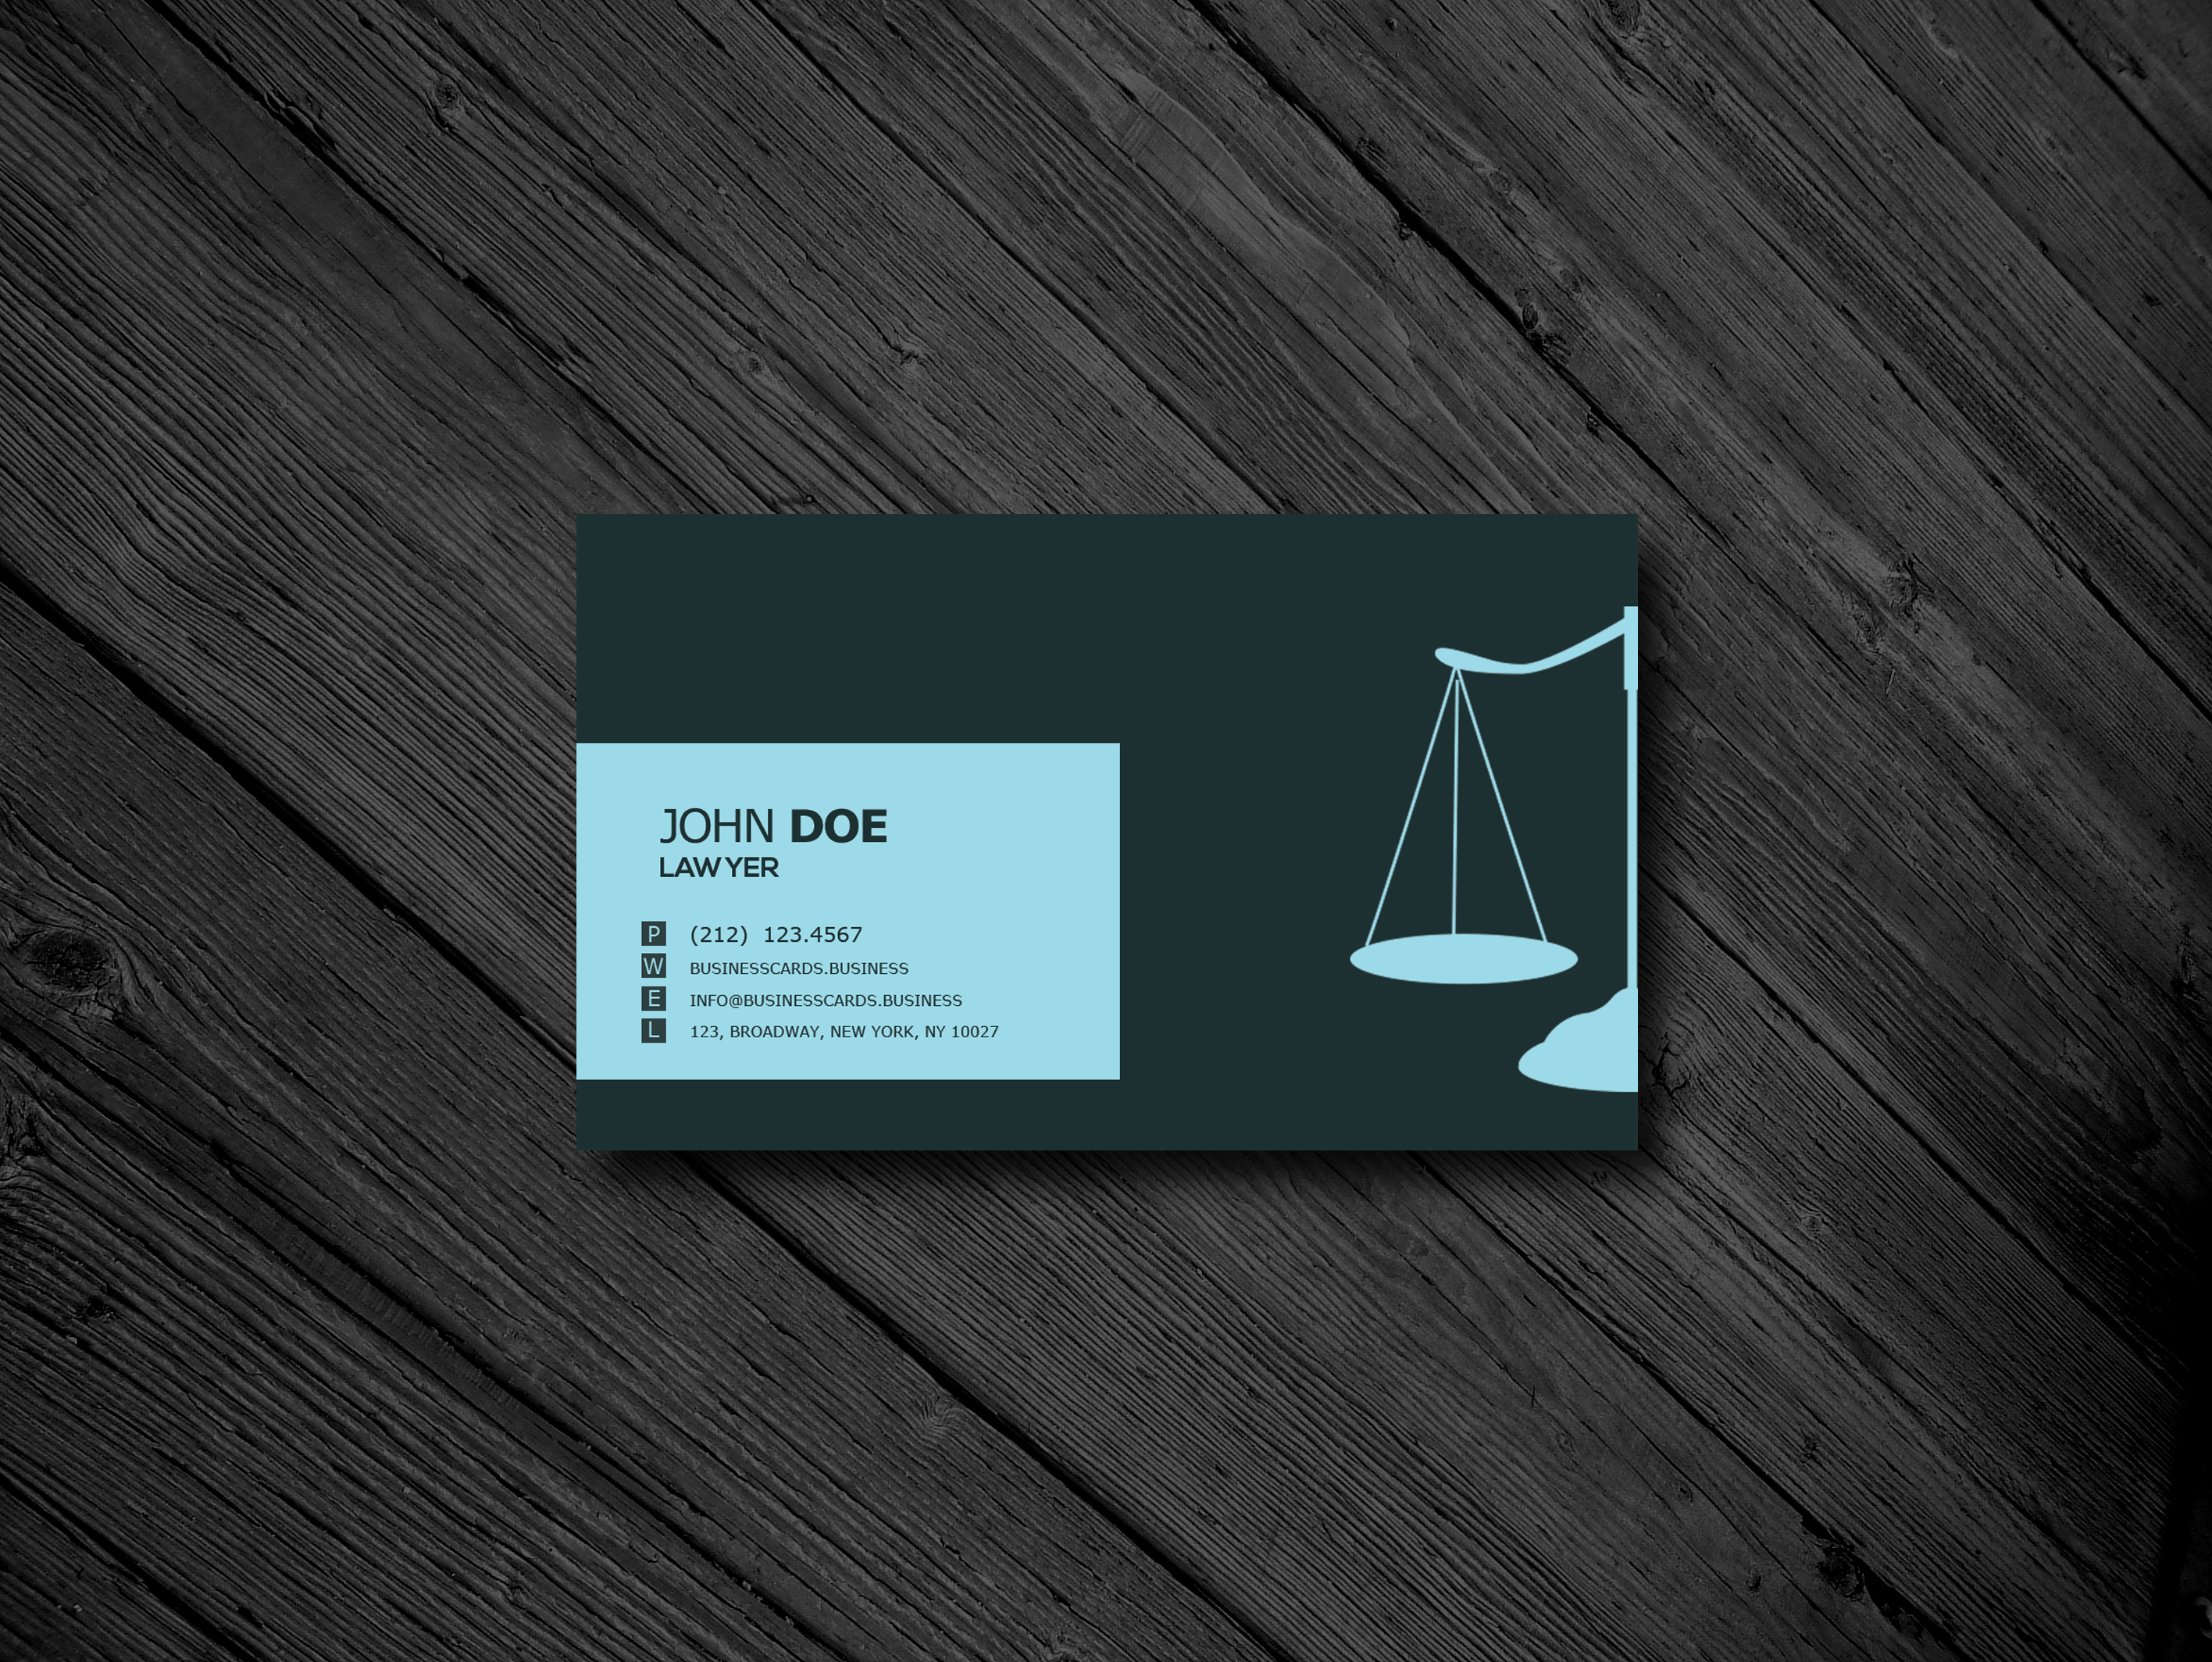 Free business card templates business cards templates free lawyer business card psd template wajeb Choice Image